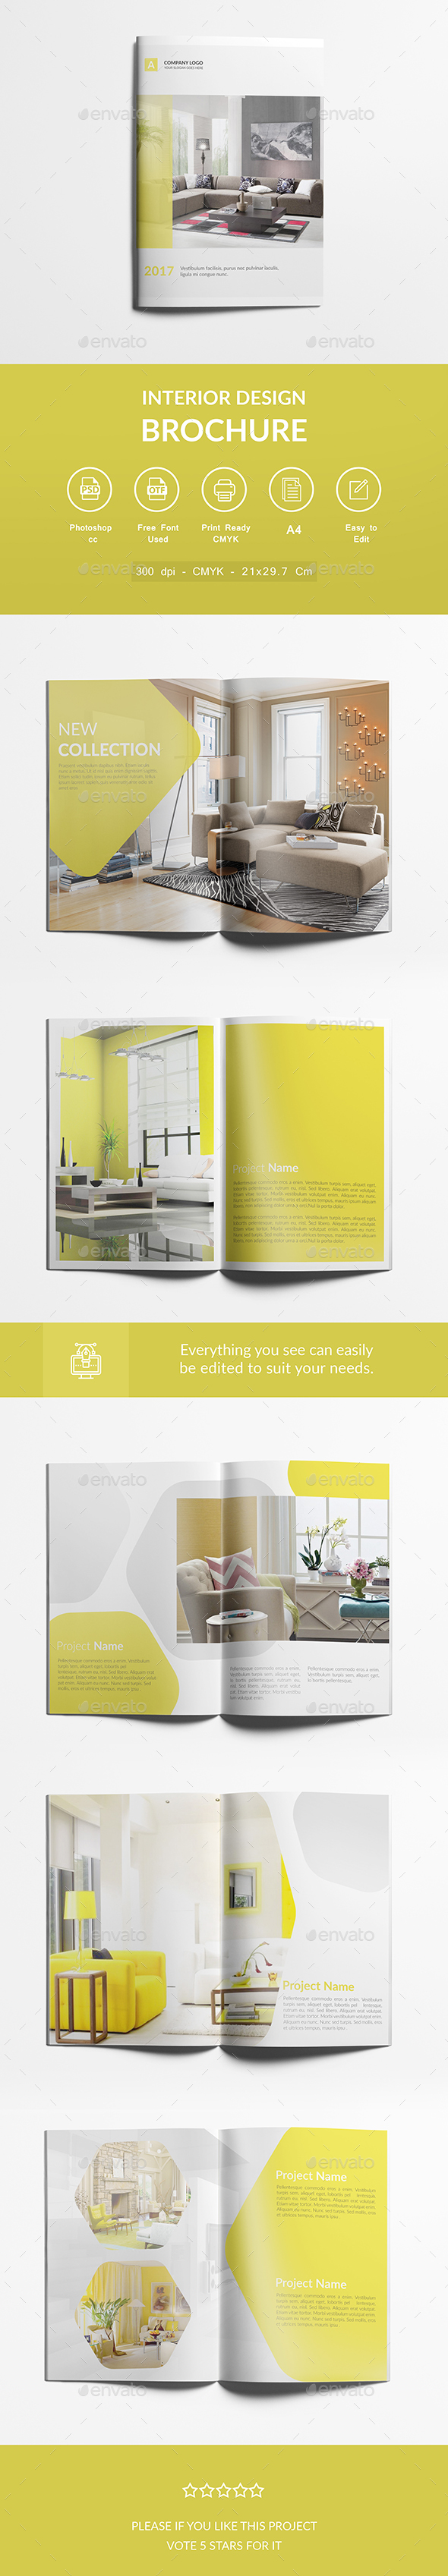 Interior Design Brochure A4 Template